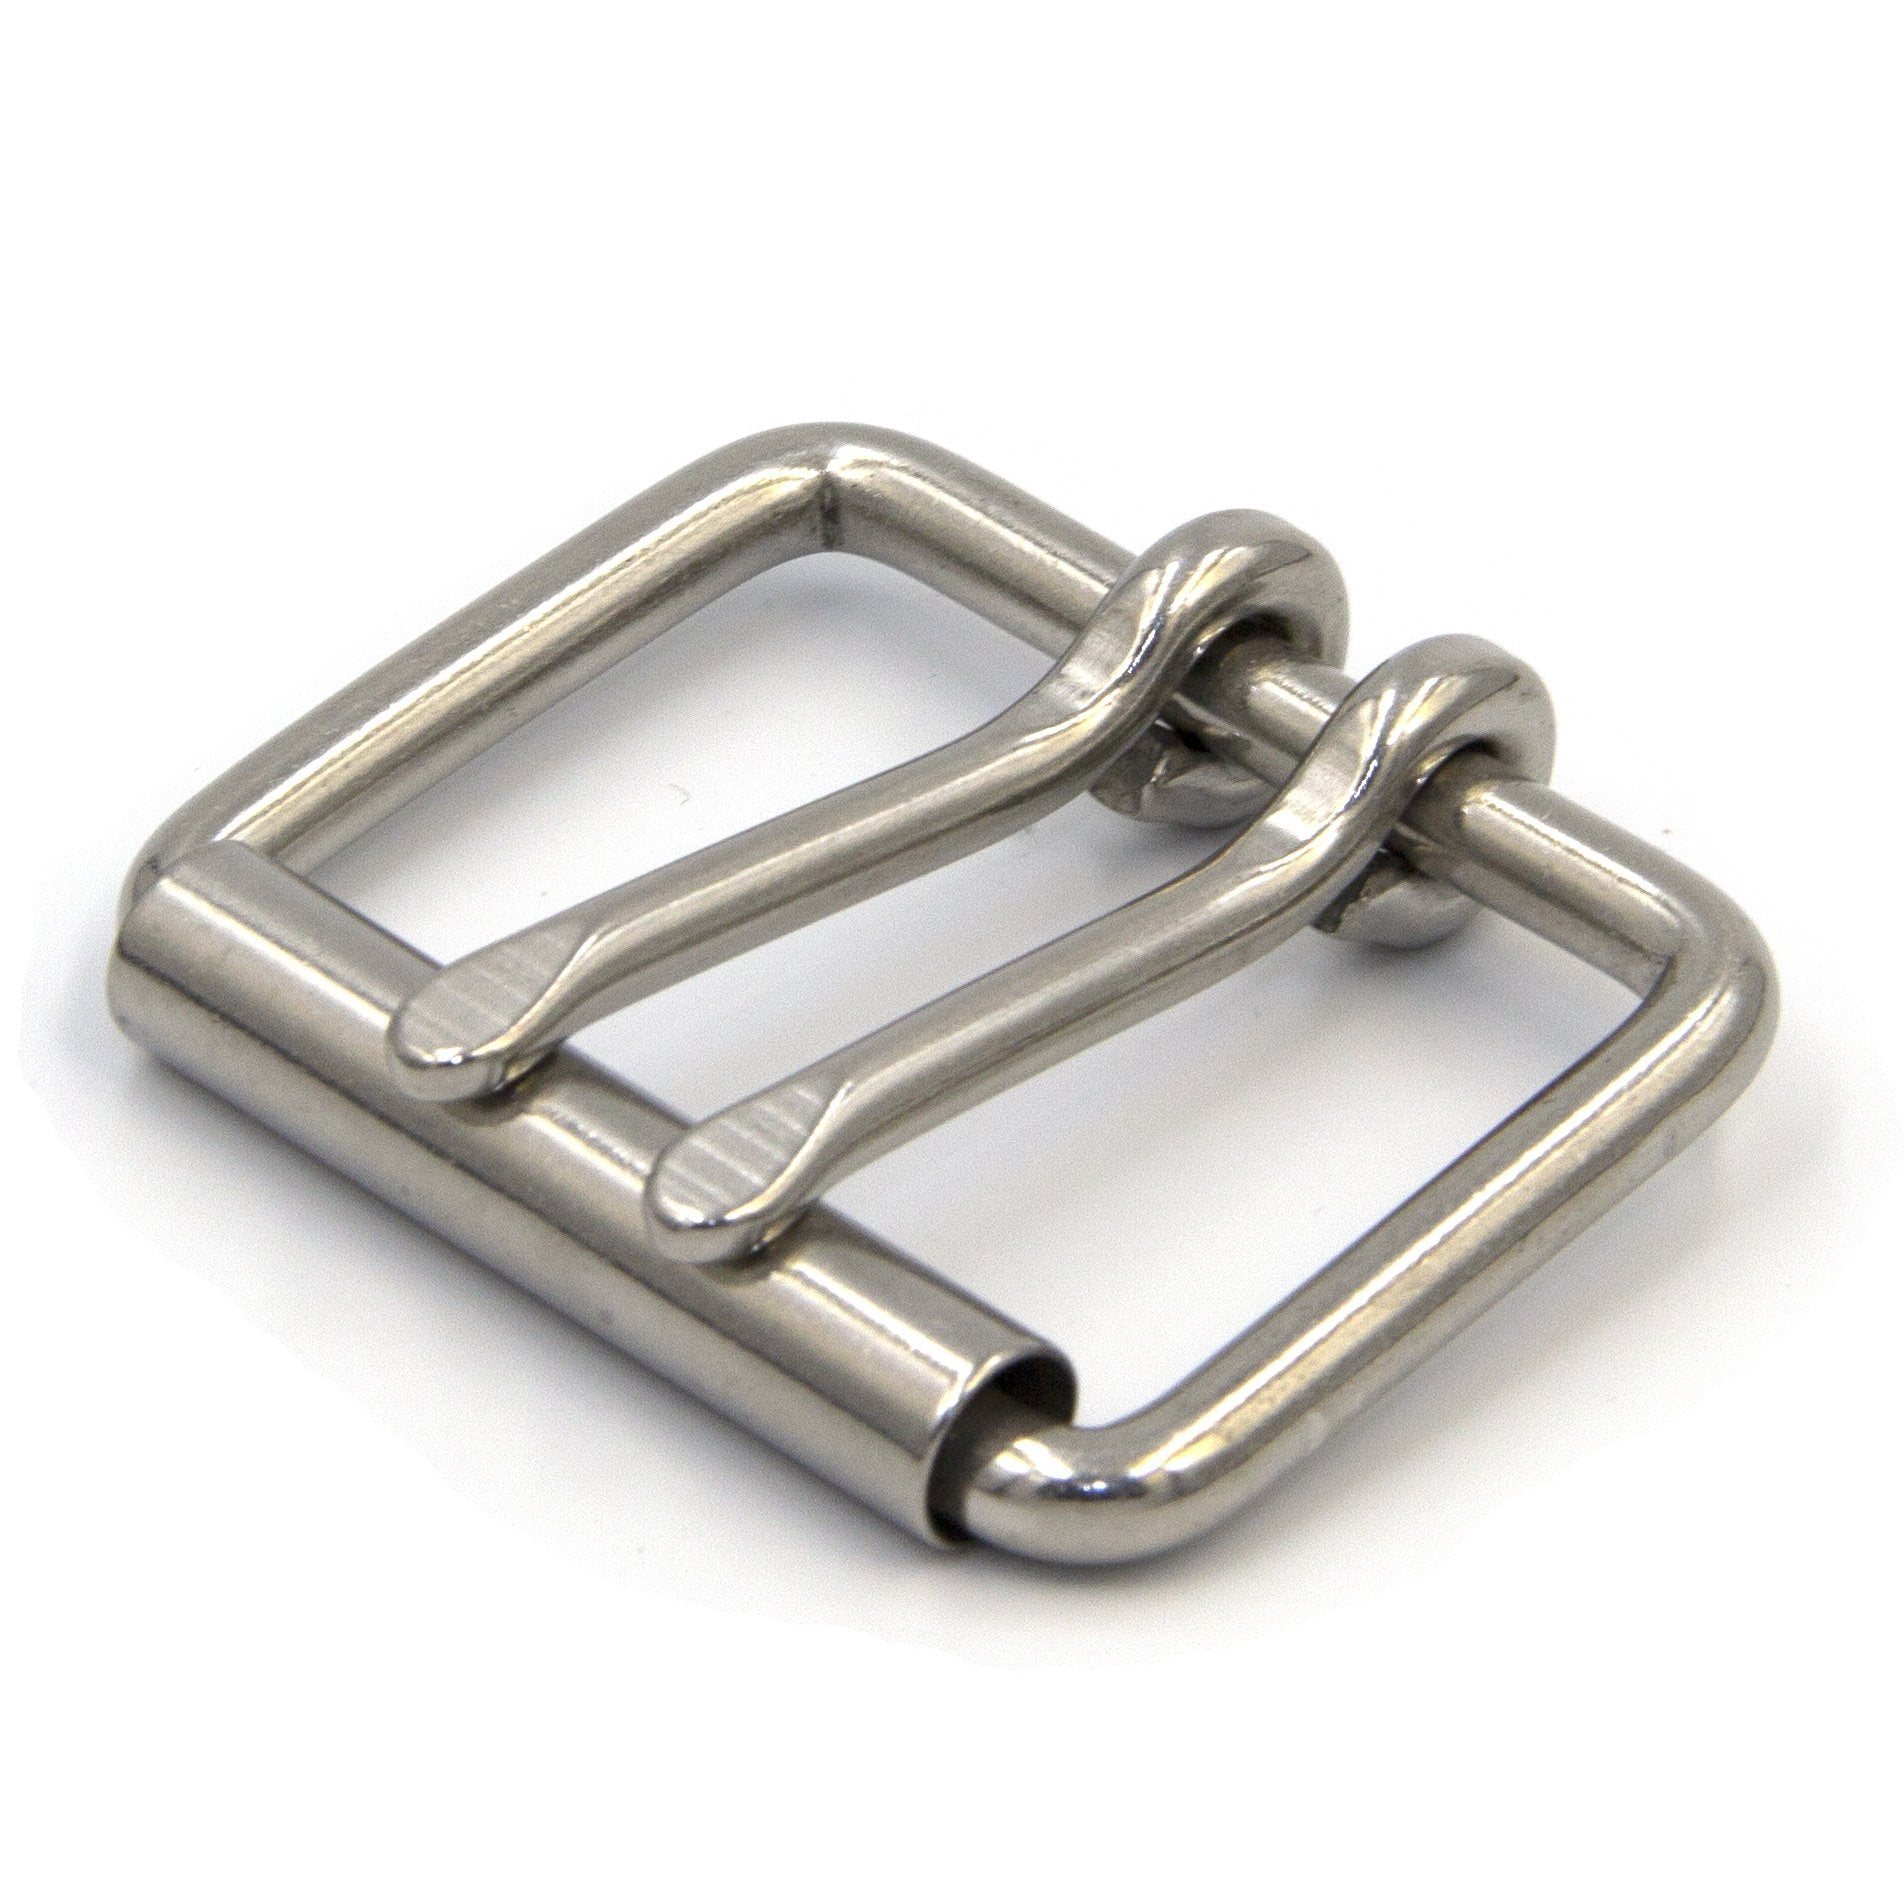 Roller Buckle Halter Harness - 50 mm, Double Pin - Metal Field